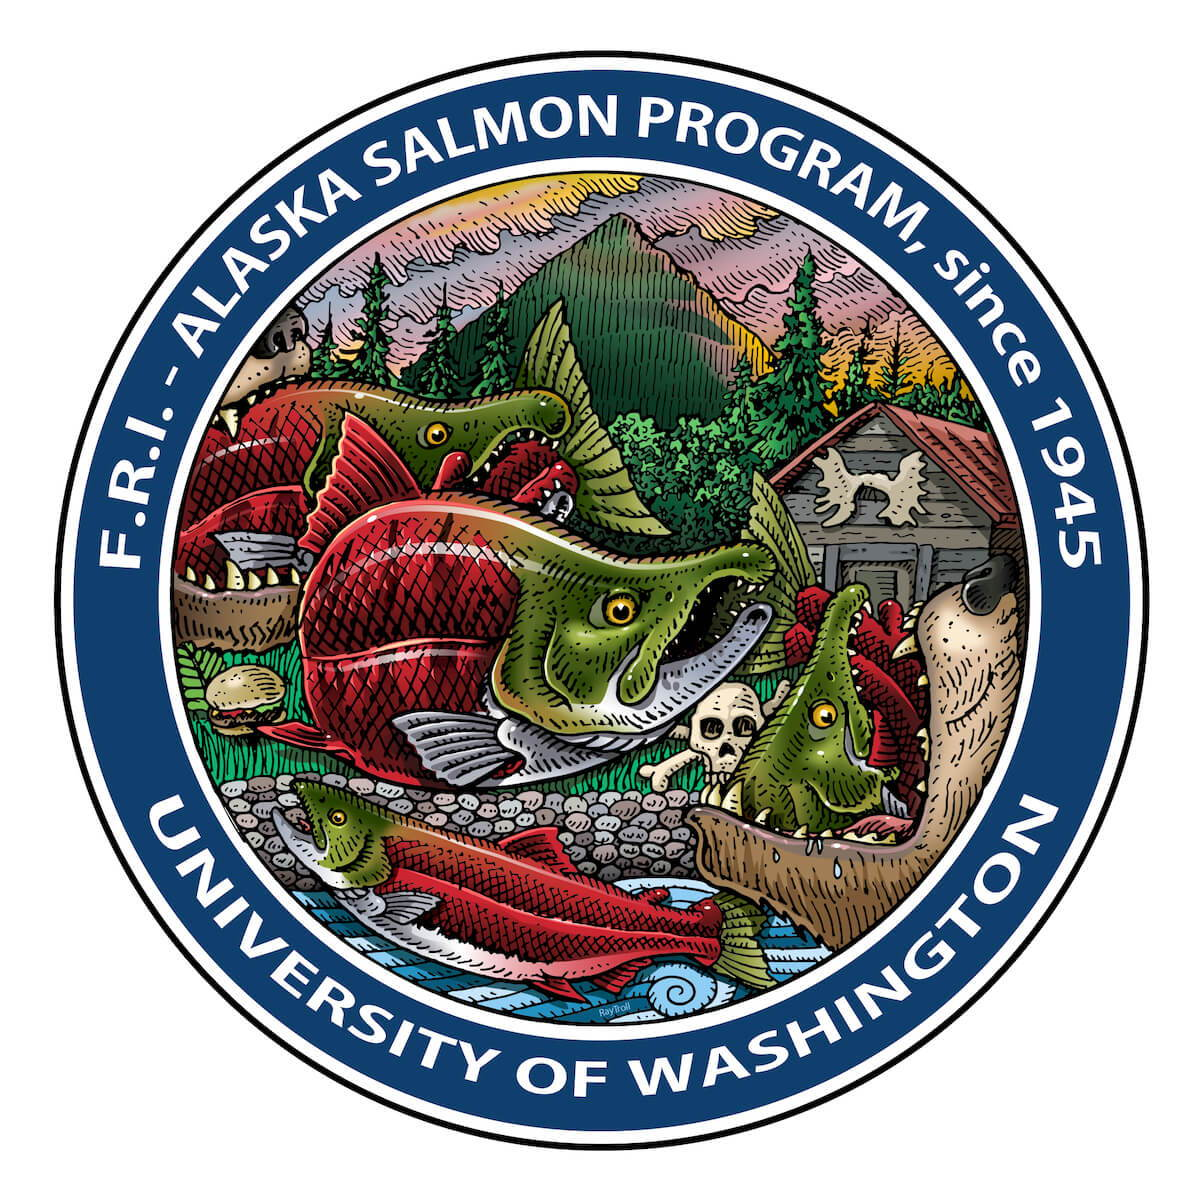 University of Washington Alaska Salmon Program Logo